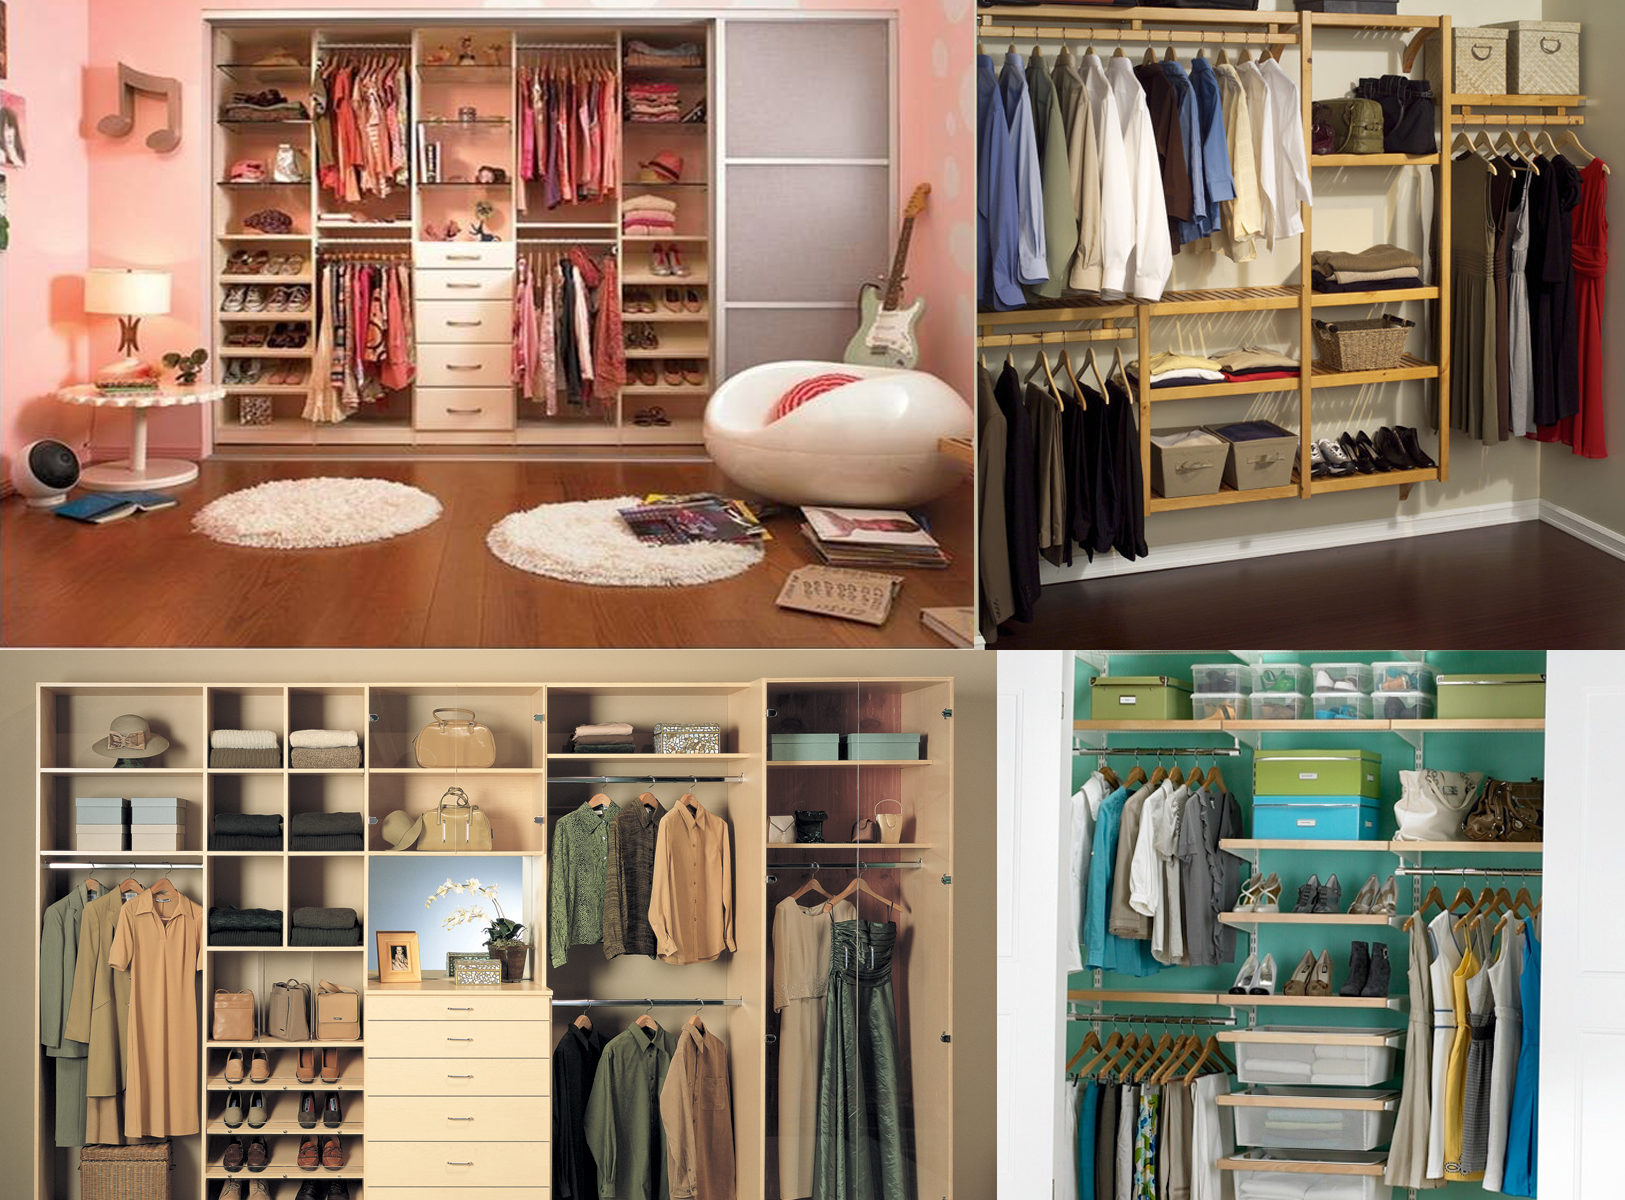 DIY Wardrobe for People Who are Tight on Budget